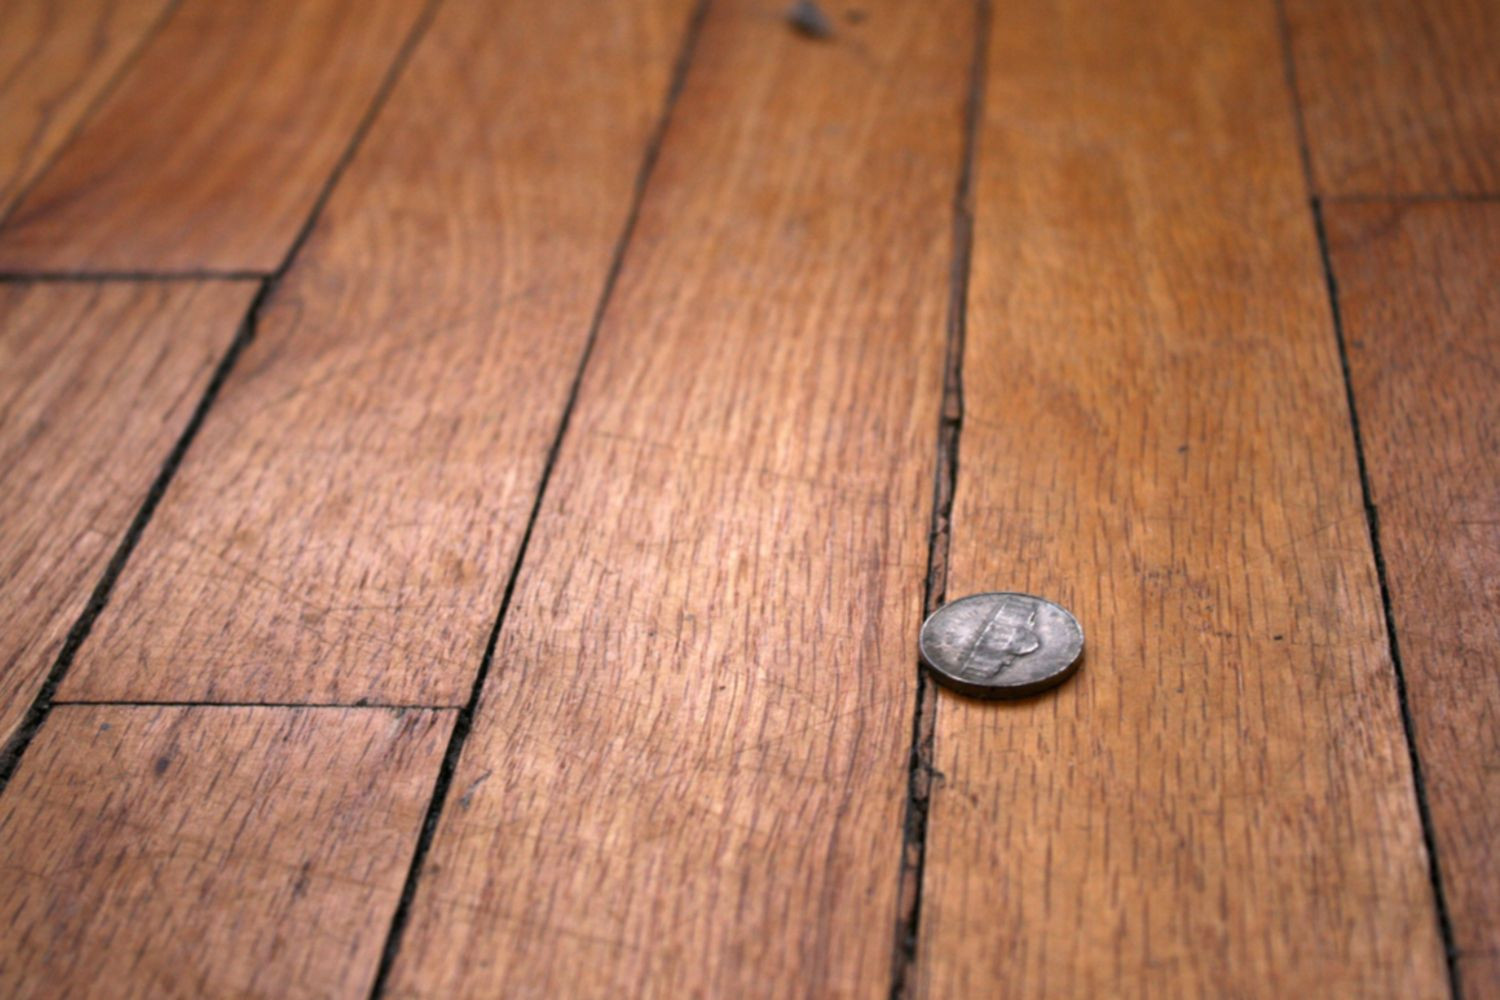 12 Unique Cost to Sand and Refinish Hardwood Floors Uk 2021 free download cost to sand and refinish hardwood floors uk of how to repair gaps between floorboards pertaining to wood floor with gaps between boards 1500 x 1000 56a49eb25f9b58b7d0d7df8d